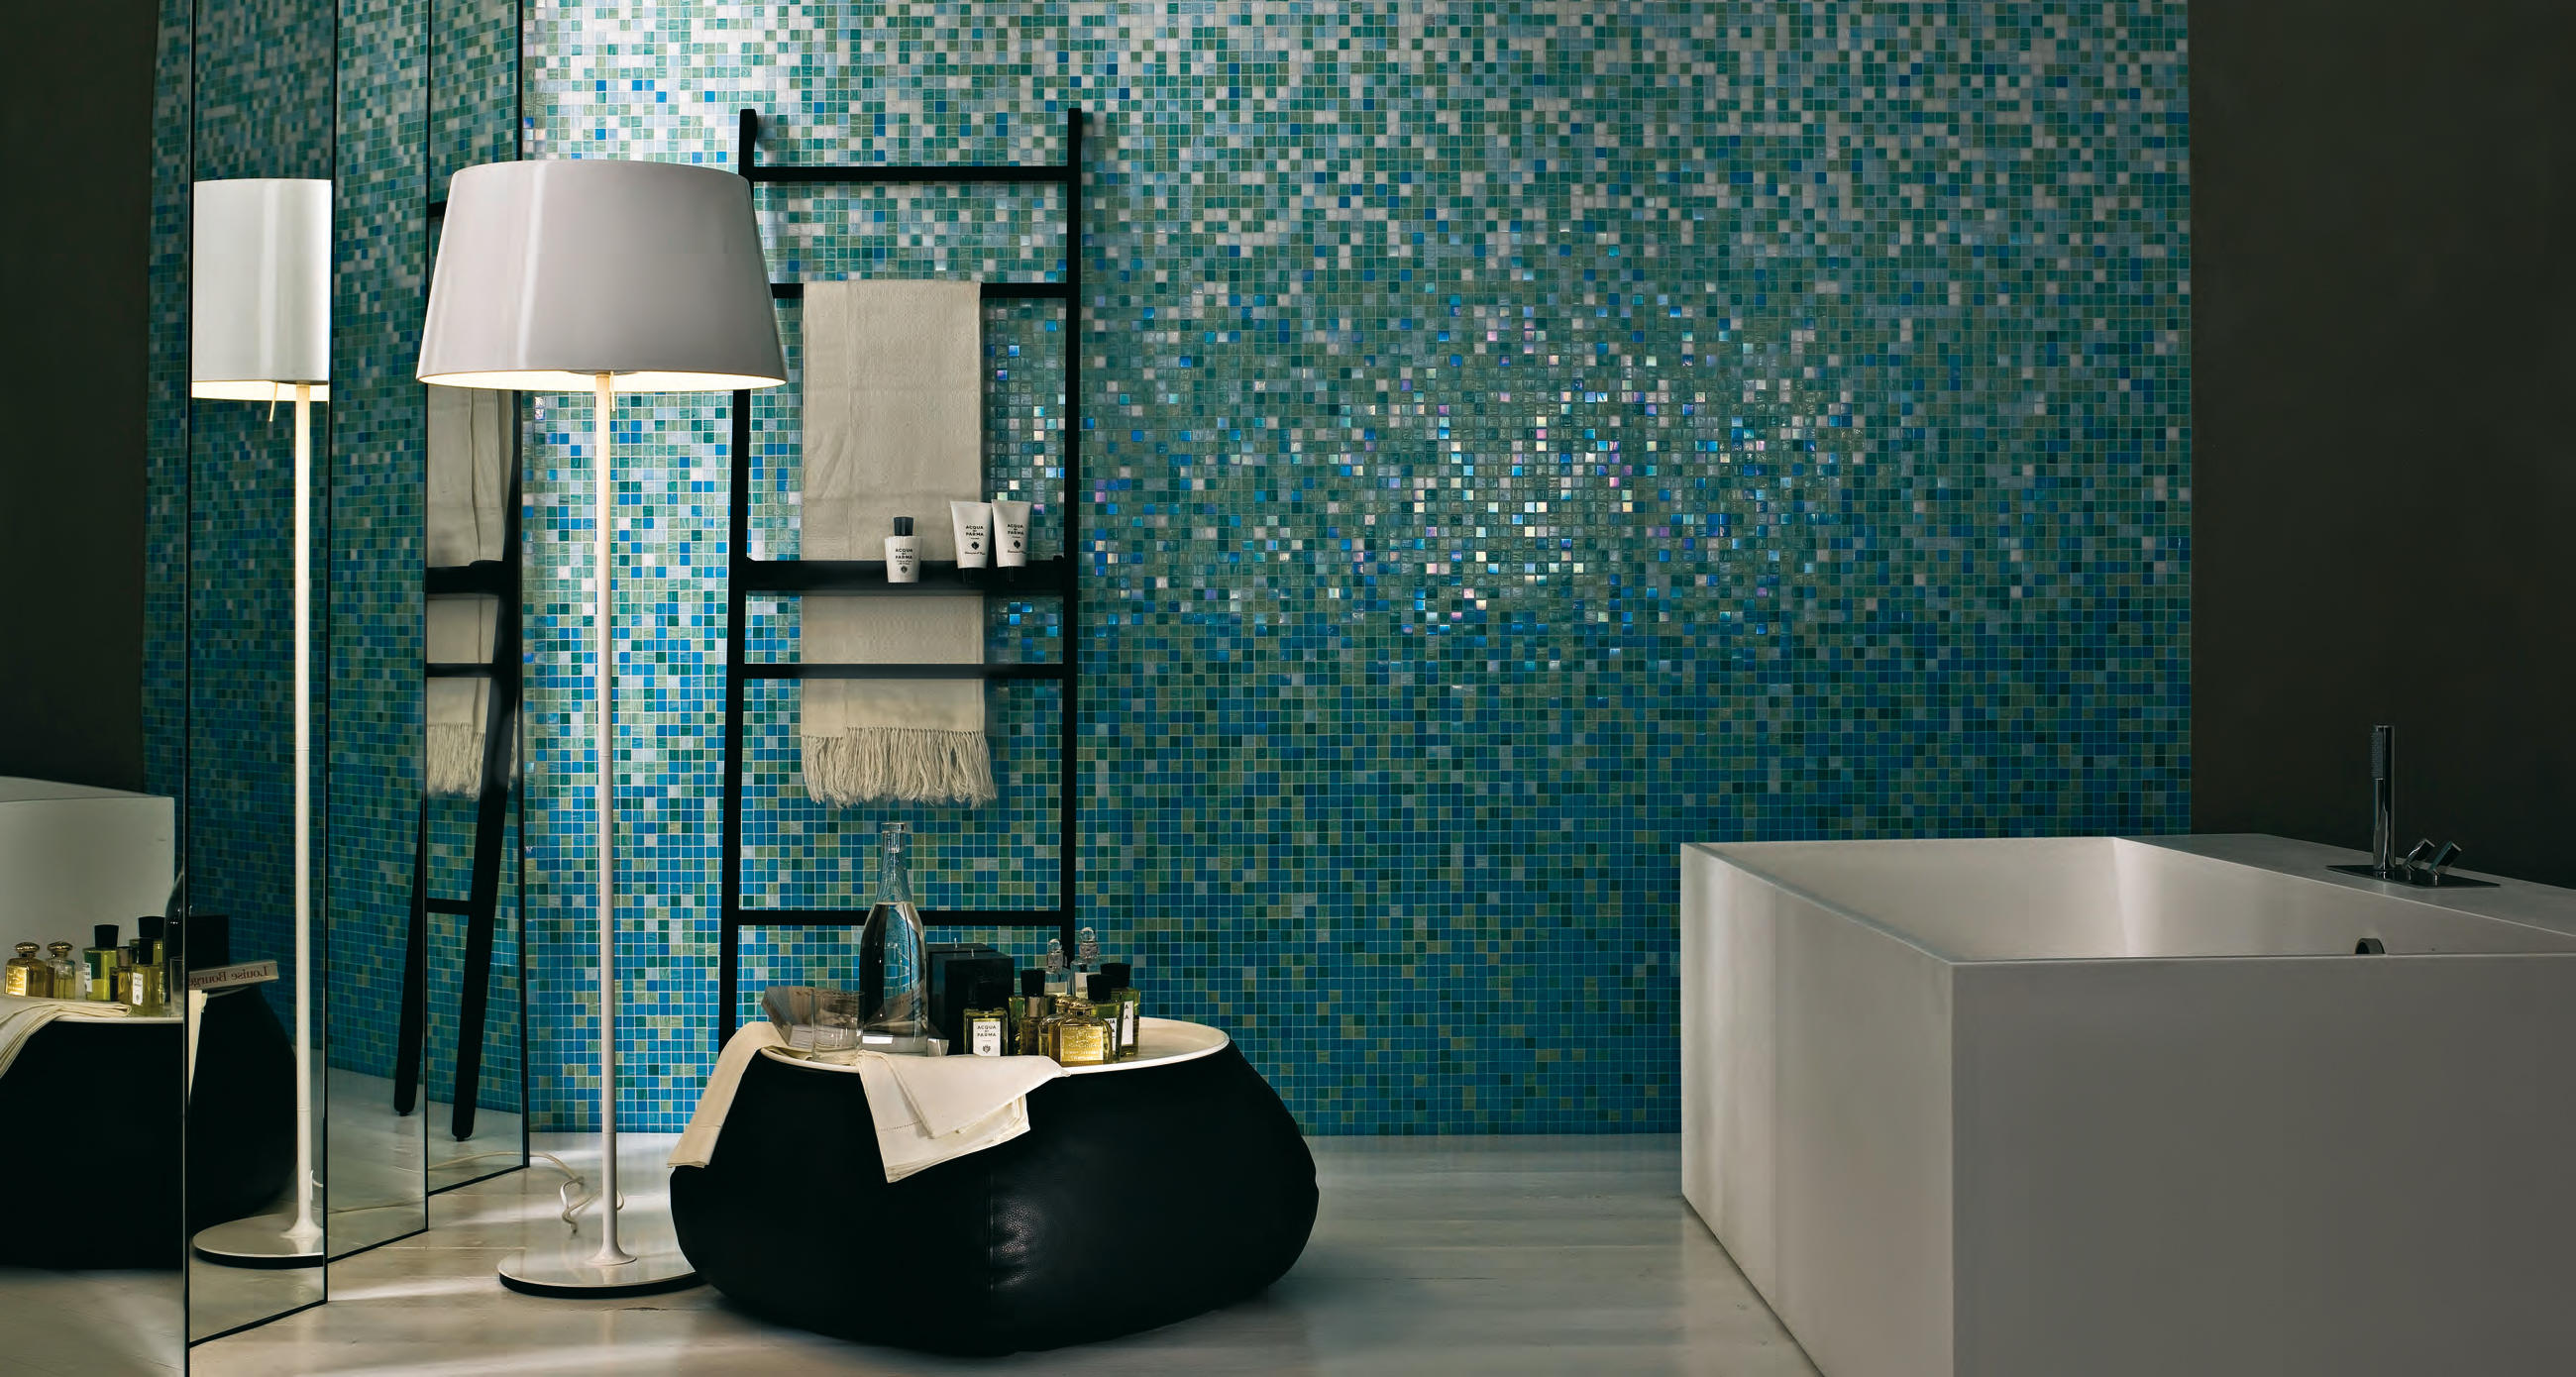 stella alpina mix 1 glass mosaics from bisazza architonic. Black Bedroom Furniture Sets. Home Design Ideas